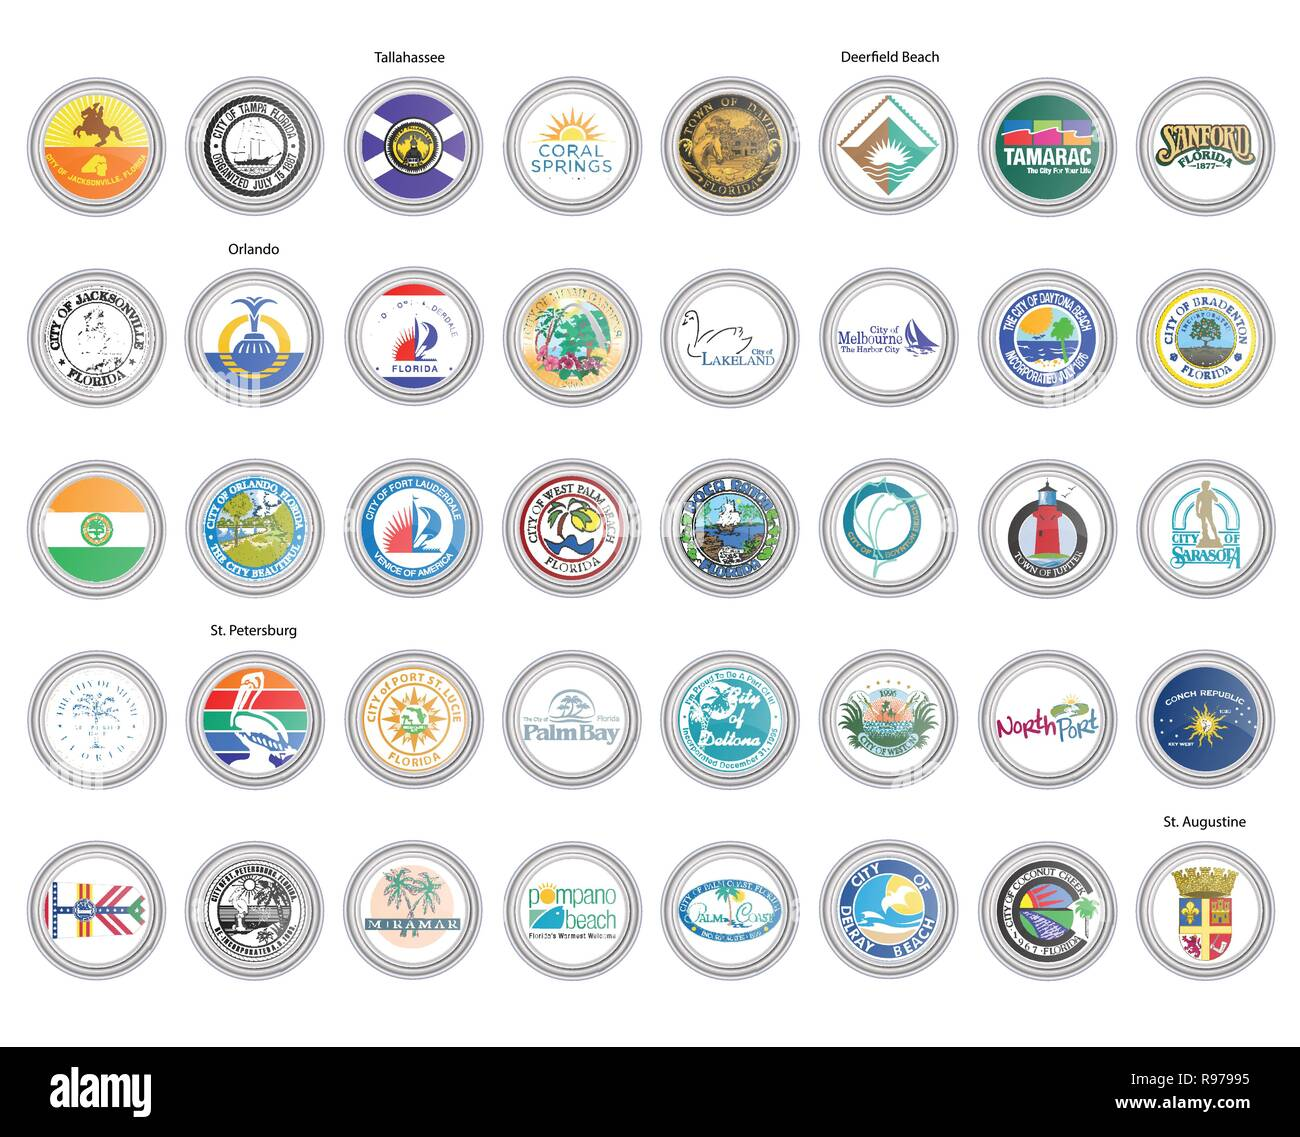 Set of vector icons. Flags and seals of Florida state, USA. 3D illustration. - Stock Image